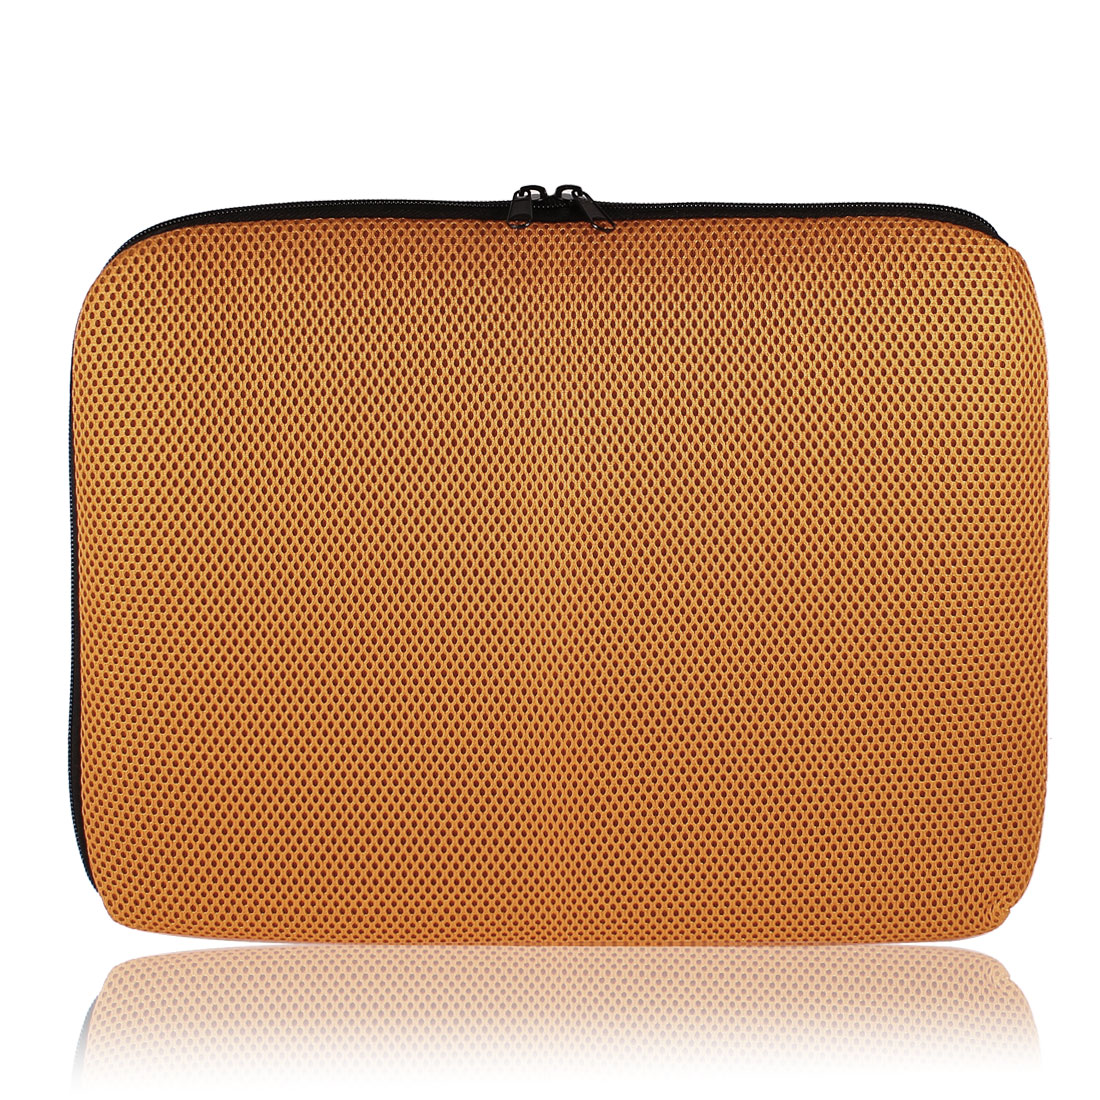 "13.3"" Computer PC Laptop Notebook Holder Sleeve Orange Mesh Carrying Case Bag"